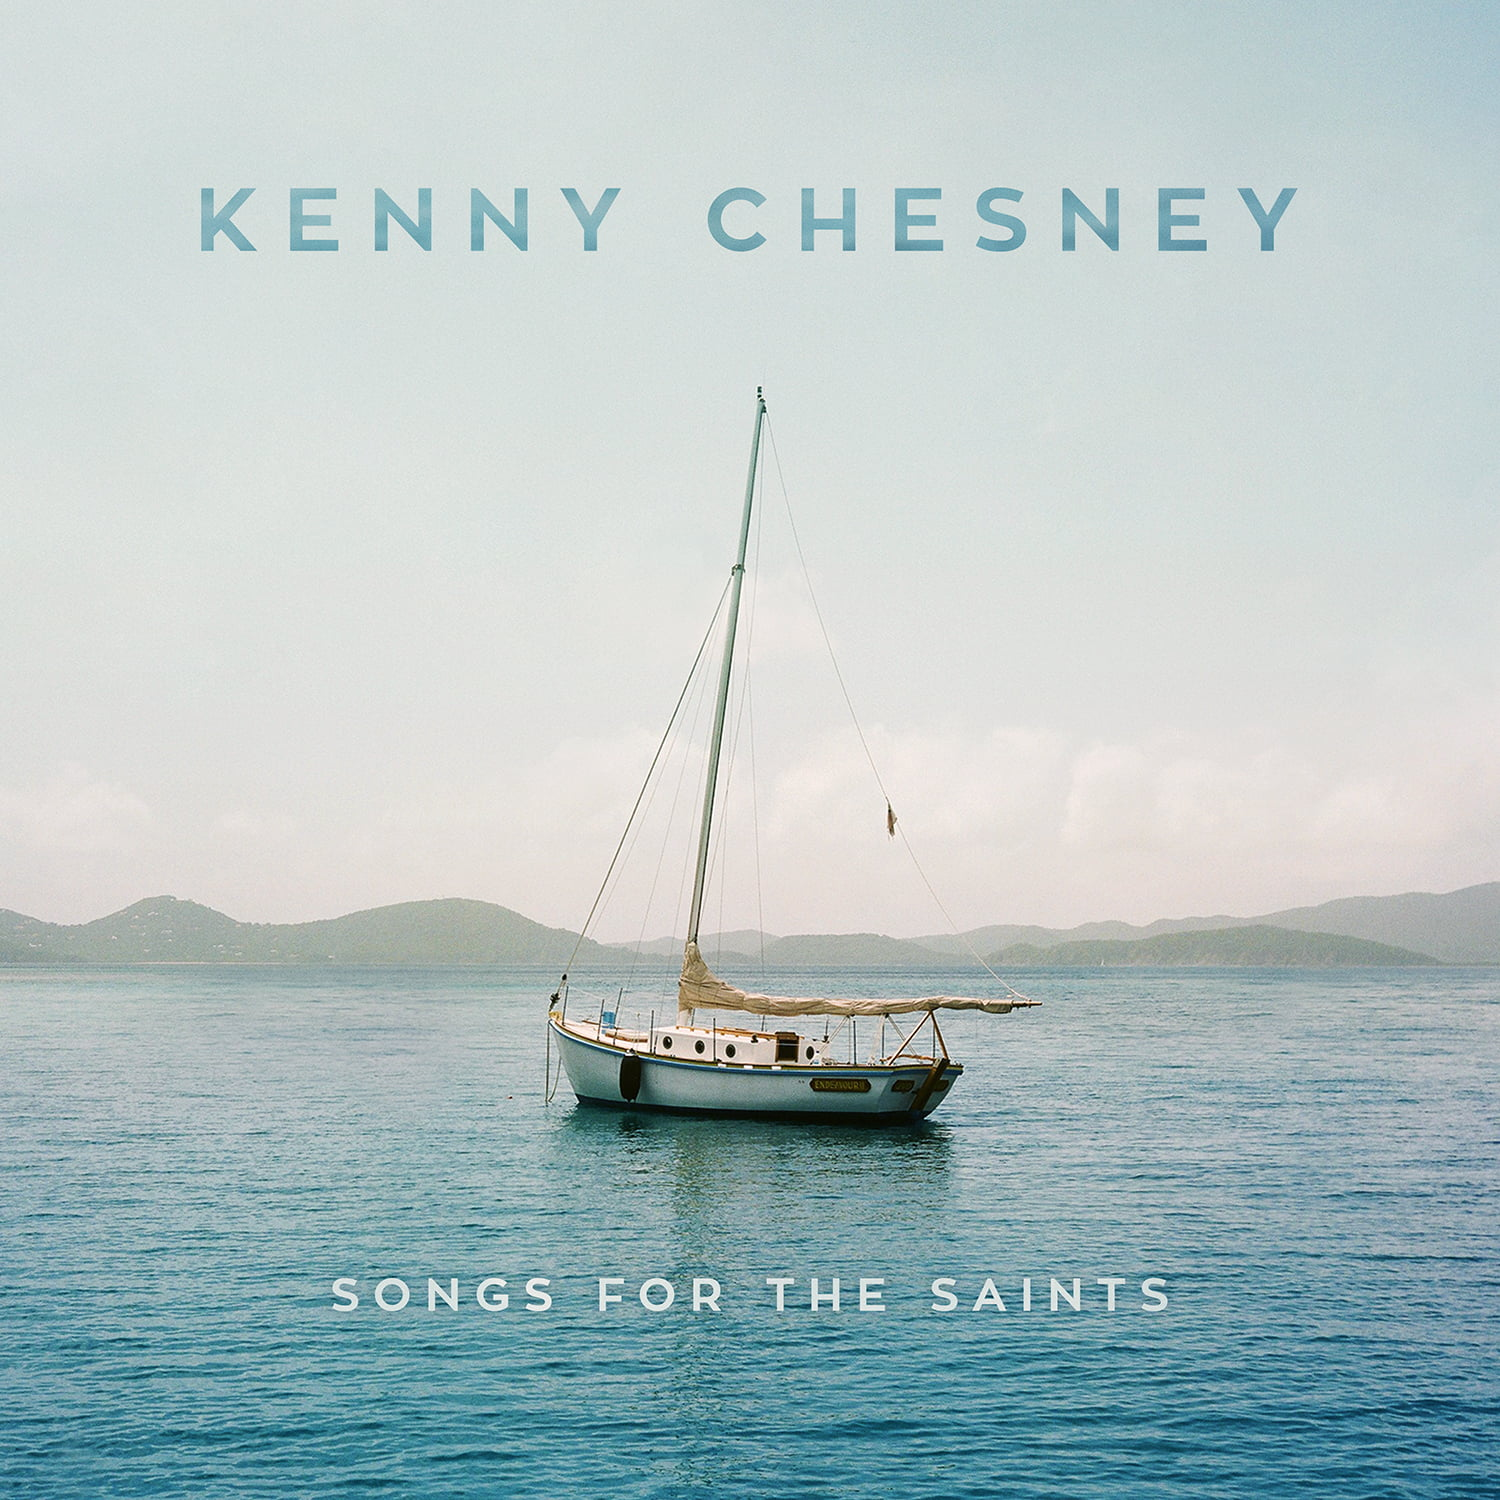 Kenny Chesney - Songs For The Saints (CD) - Walmart.com